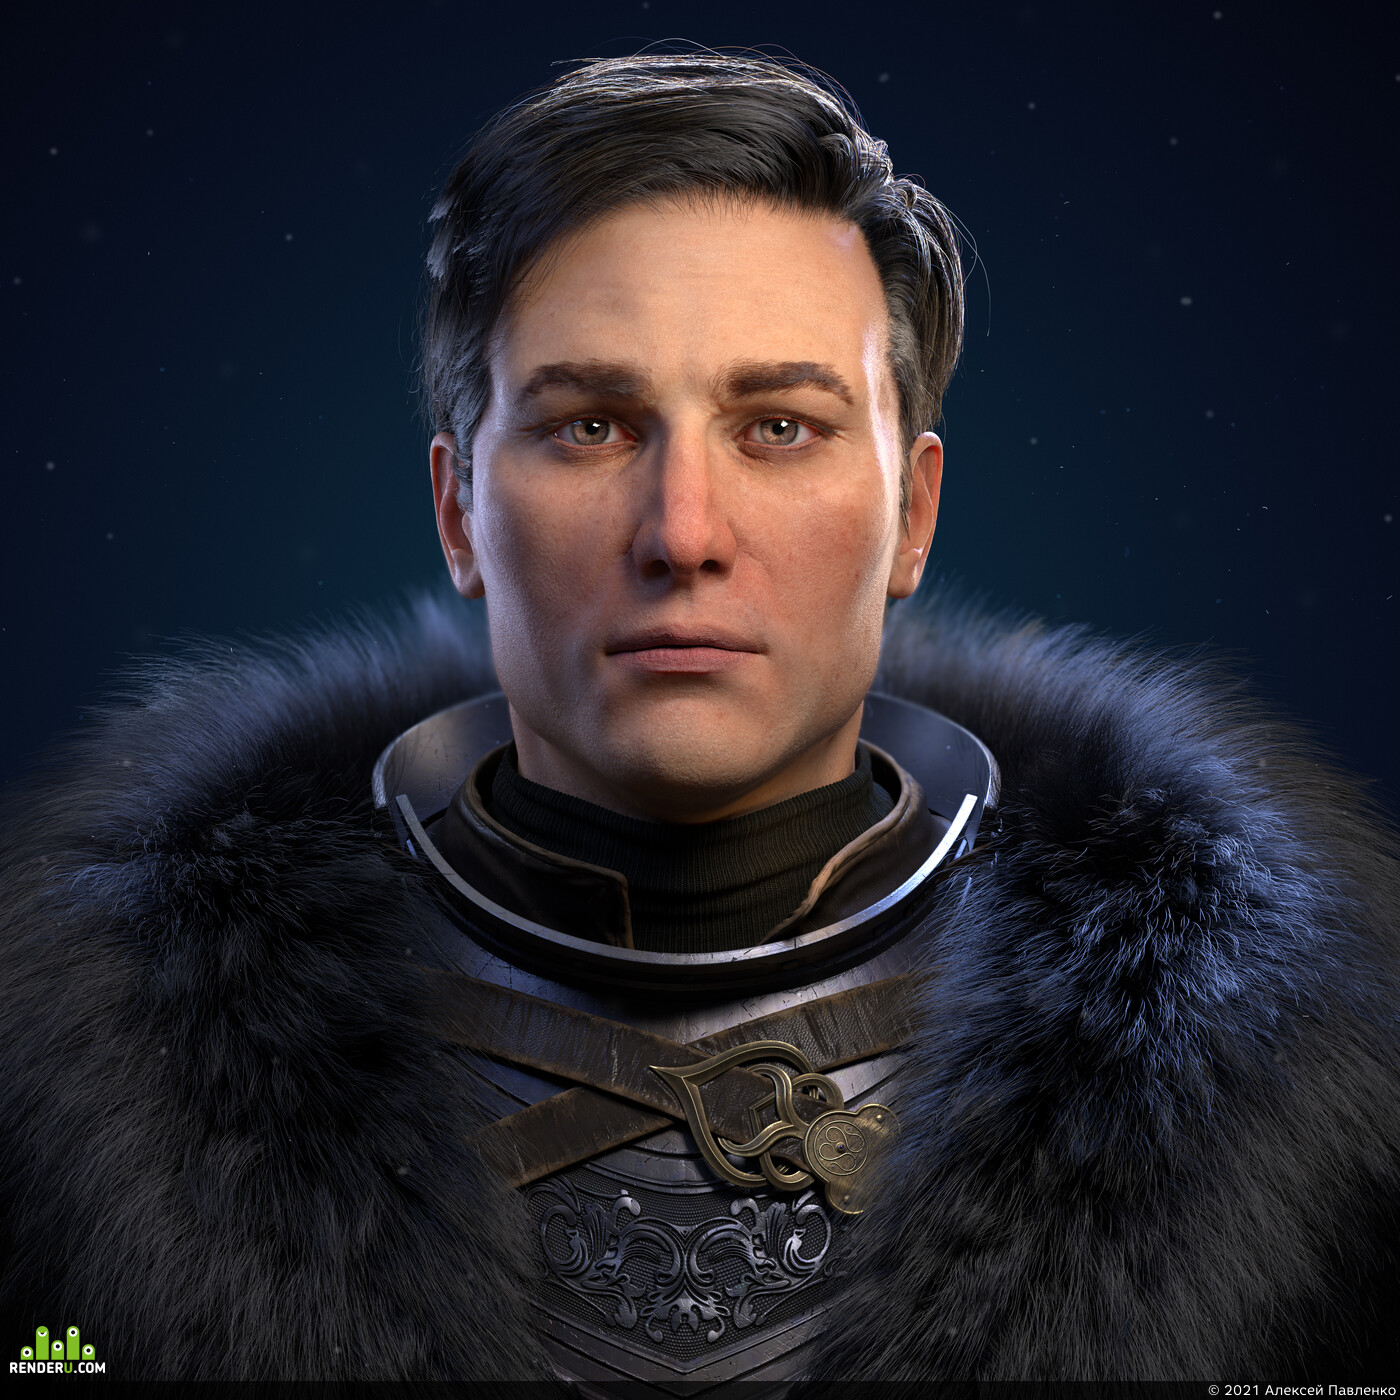 realism, knight, warrior, medieval, male, fur texturing,